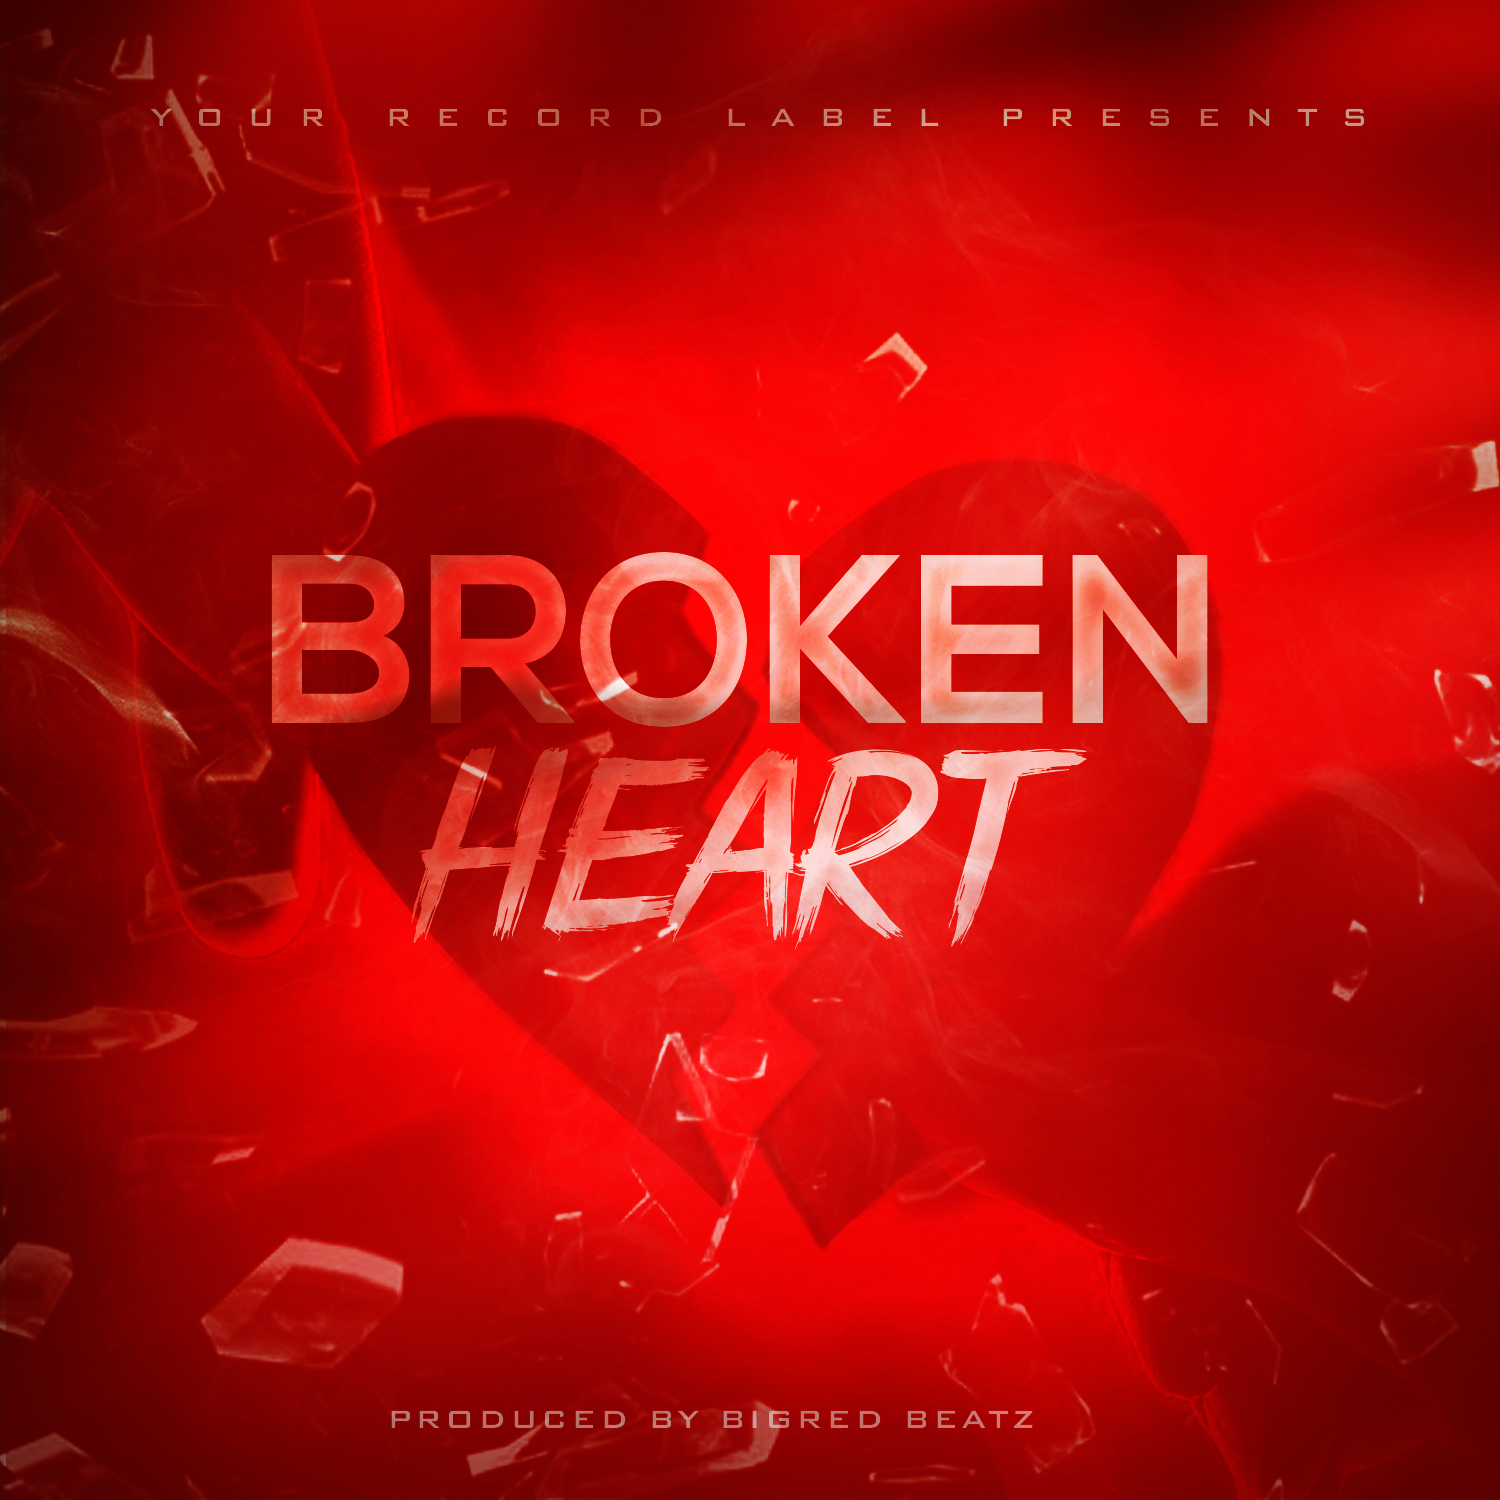 broken heart free album cover template